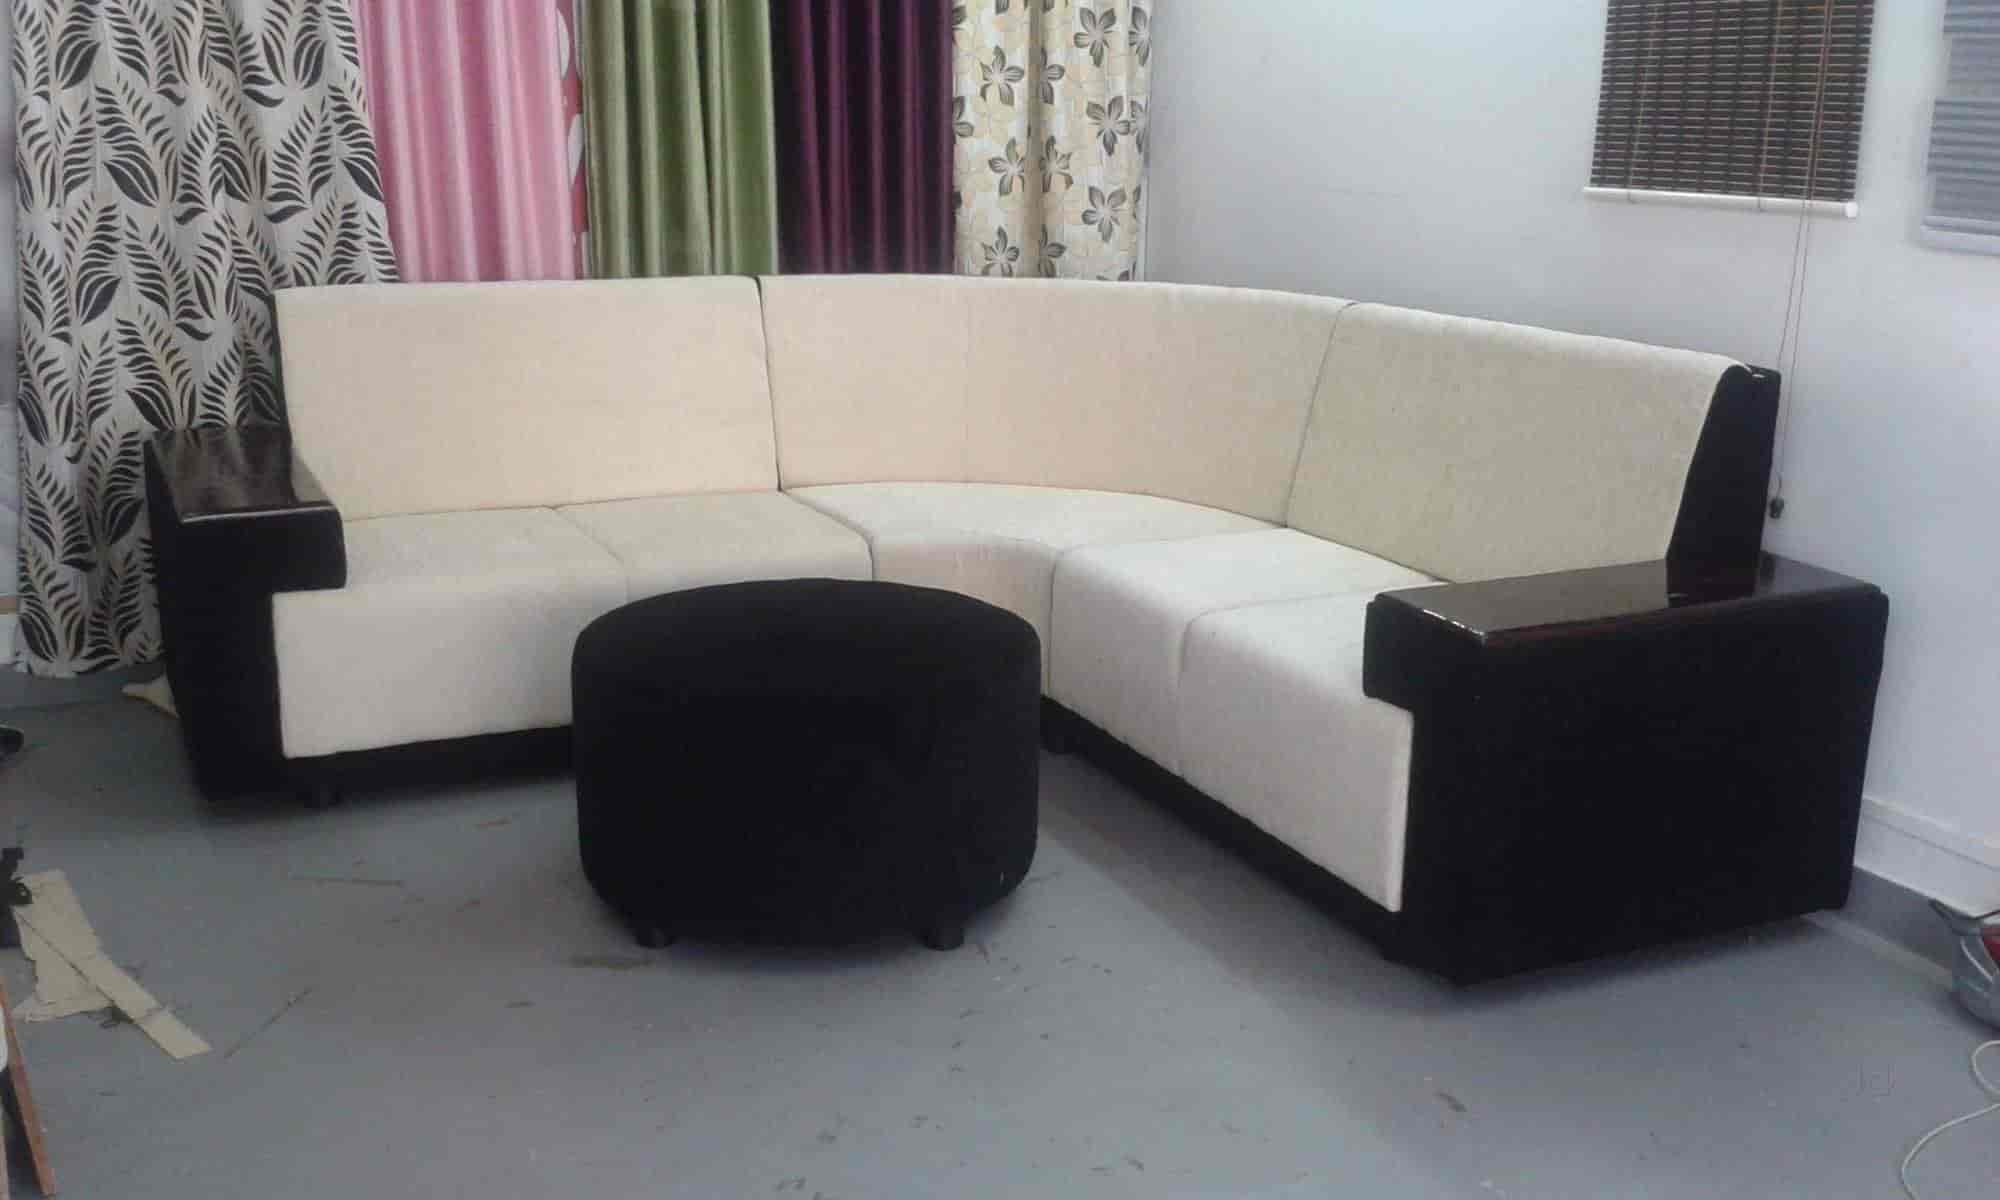 Twin Decor Puthur Sofa Set Repair & Services in Trichy Justdial